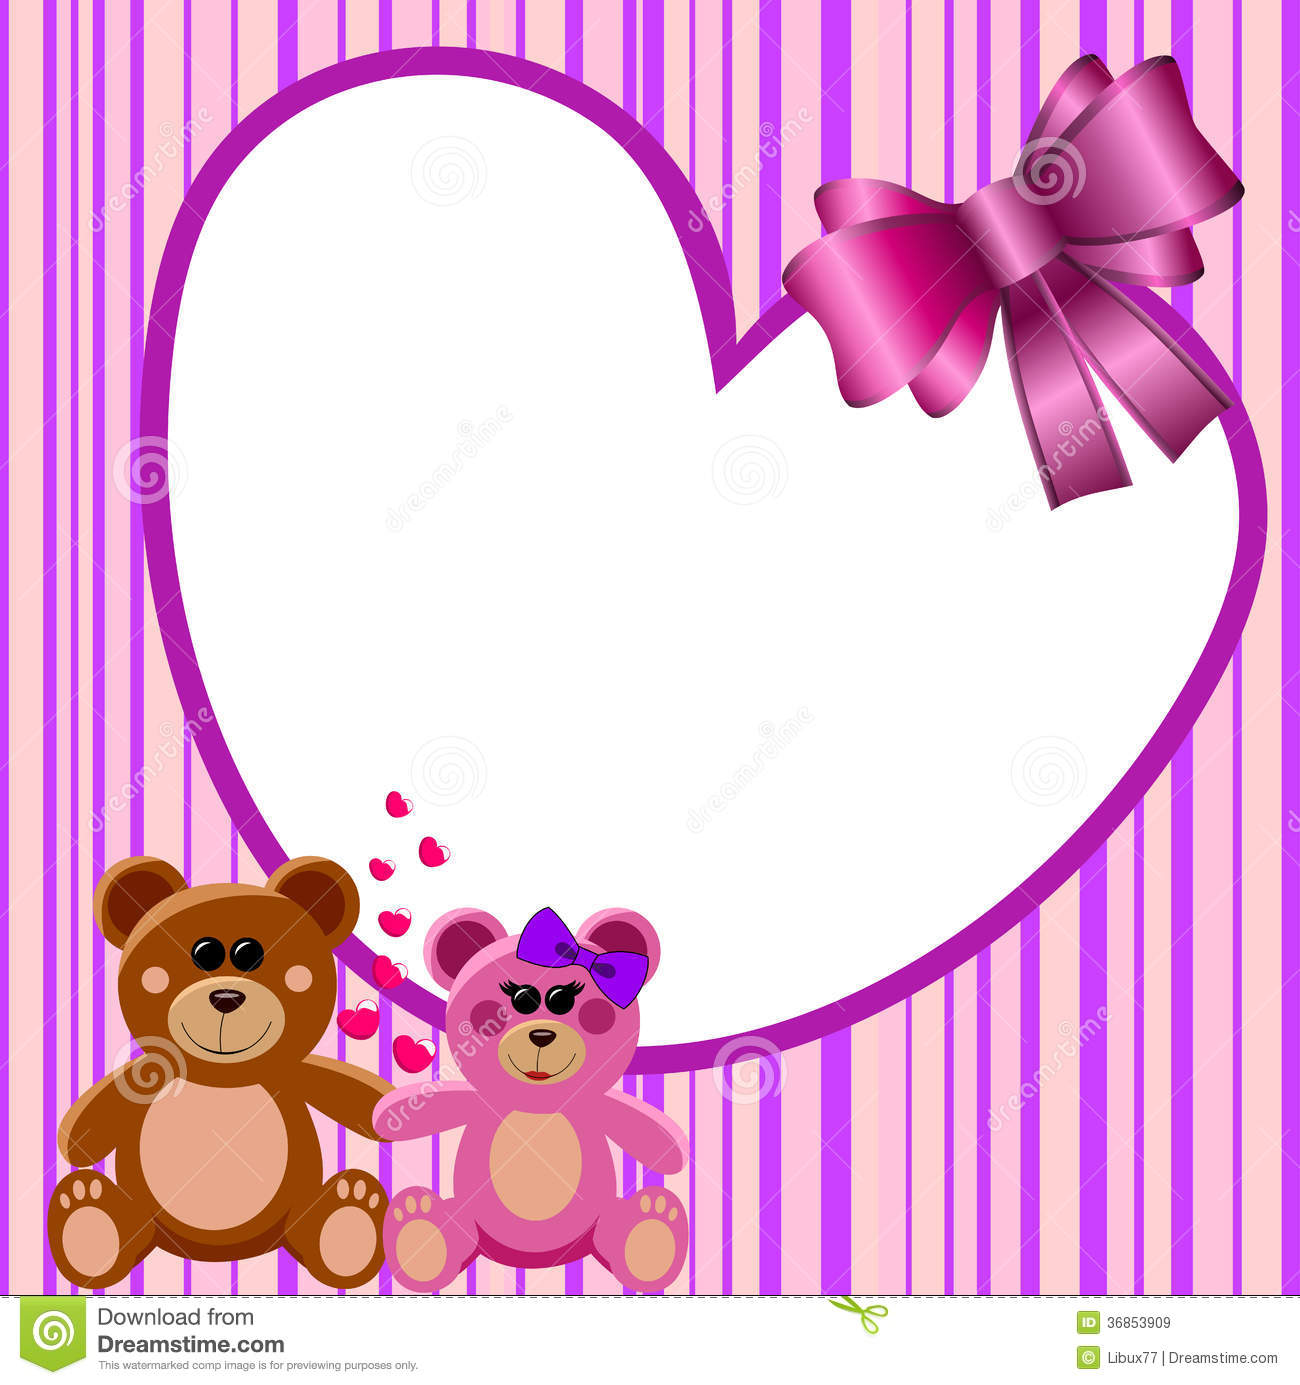 Love Heart Frame Teddy Bears Stock Vector - Illustration of framing ...